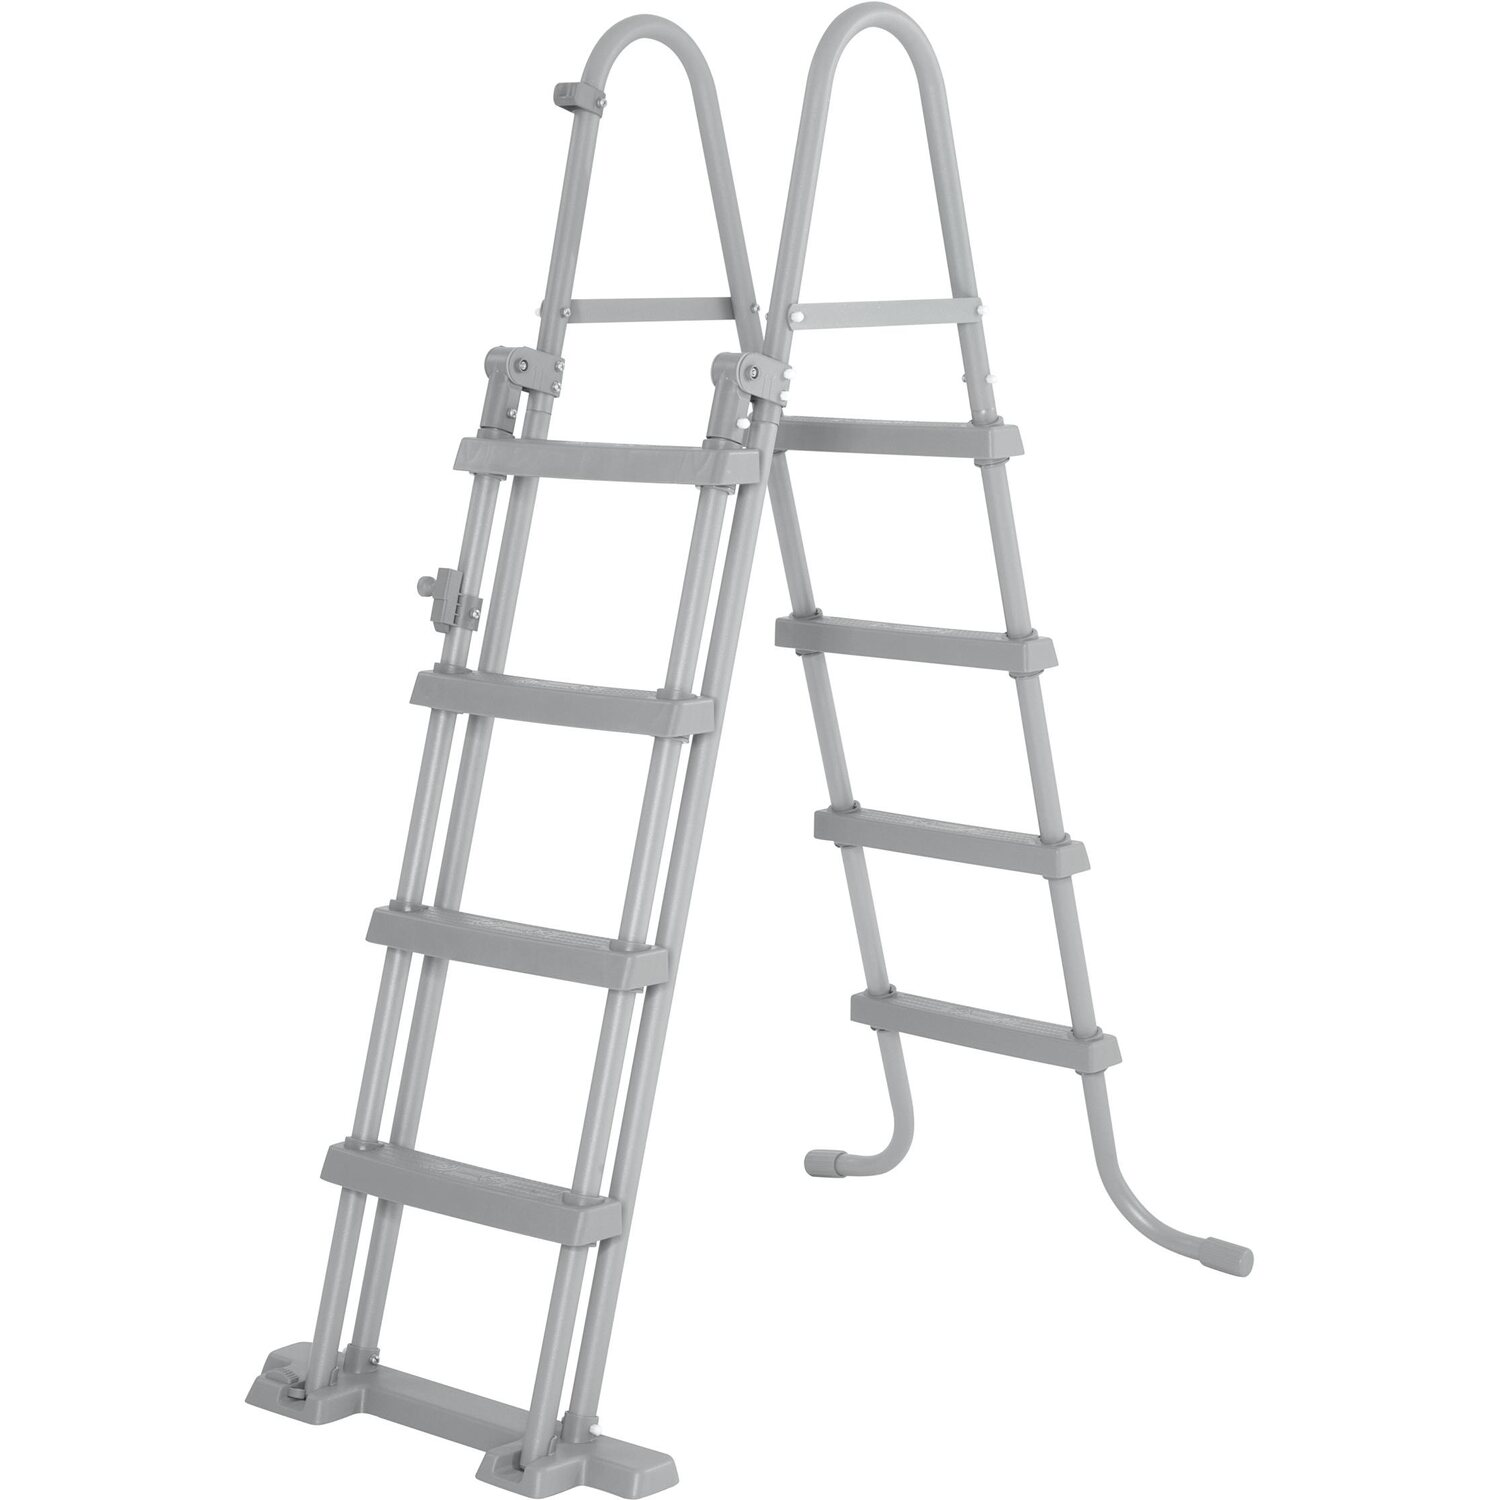 Bestway pool set hydrium steel wall oval 610 cm x 360 cm x for Bestway pool obi